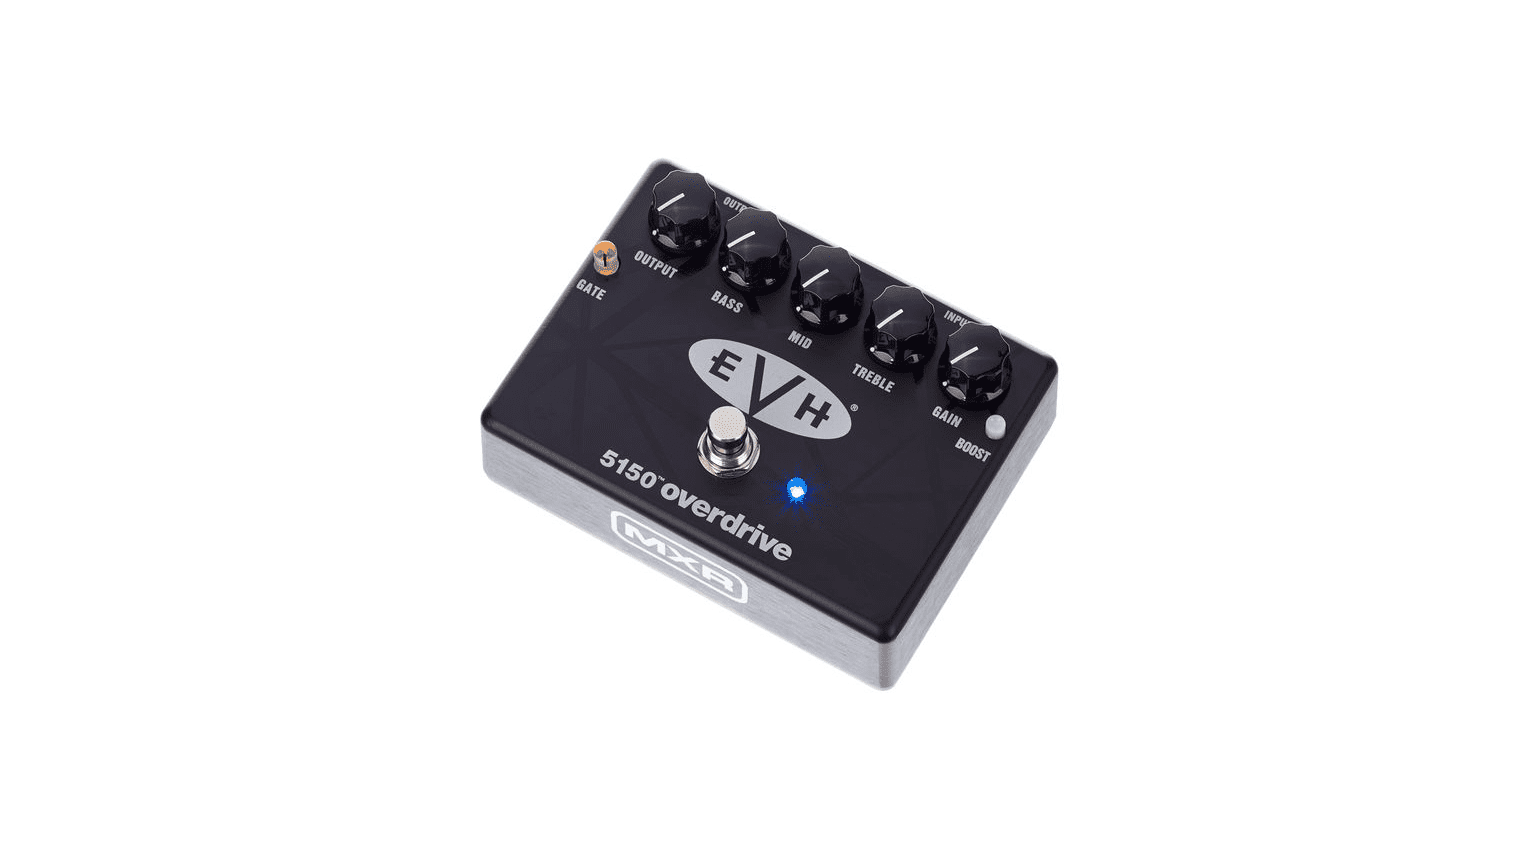 22cc6626c48 MXR EVH 5150 signature overdrive pedal launched - gearnews.com